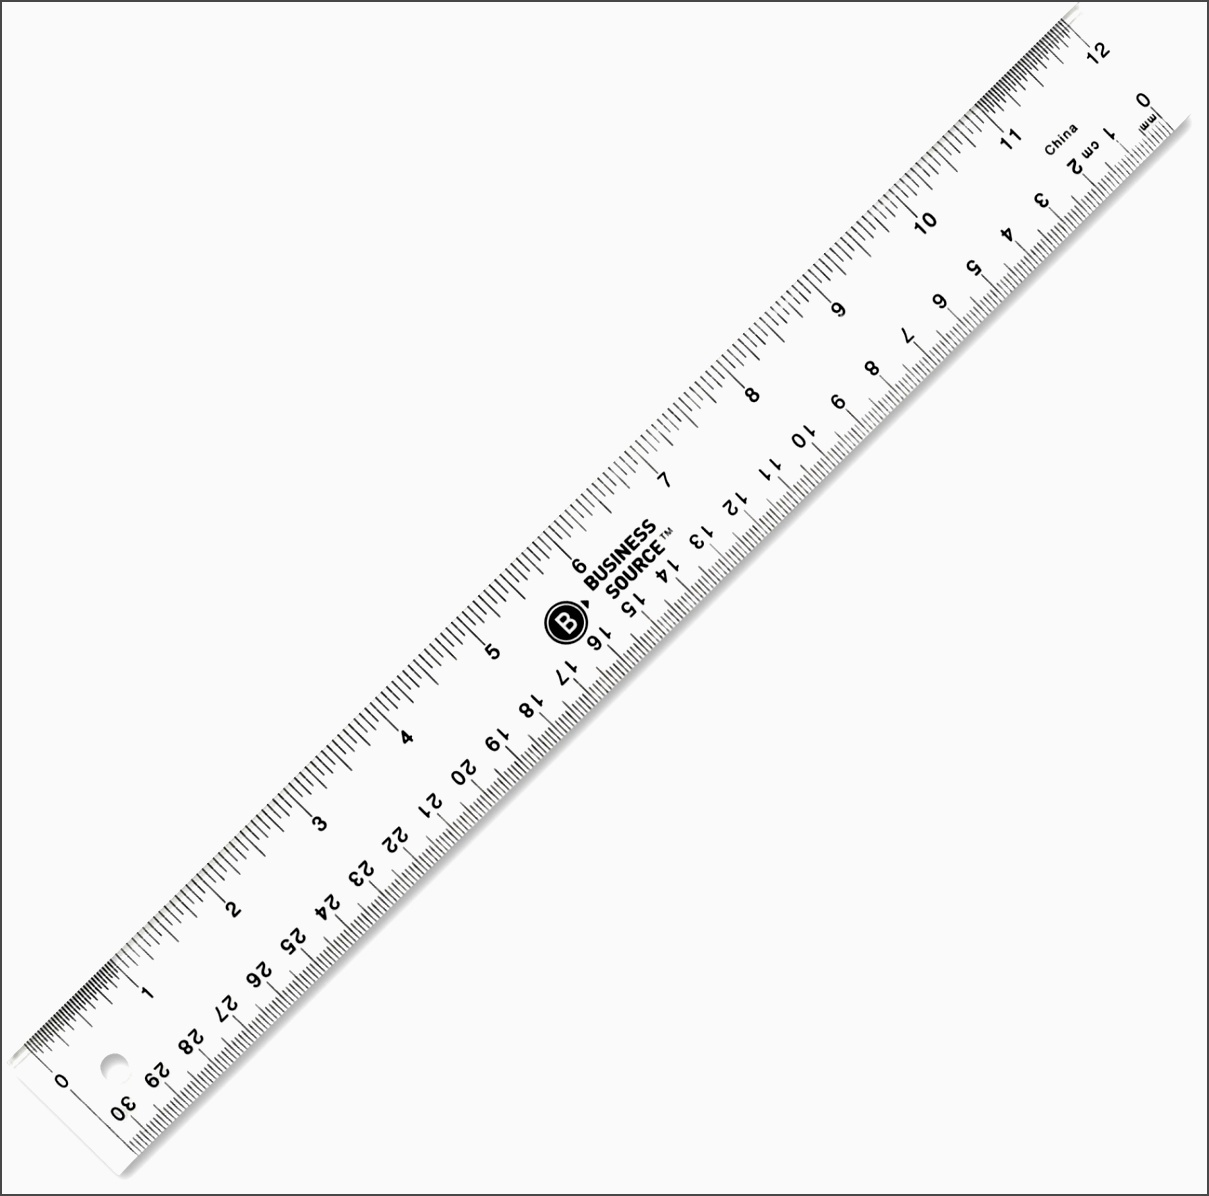 ruler with cm and inches printabl ...